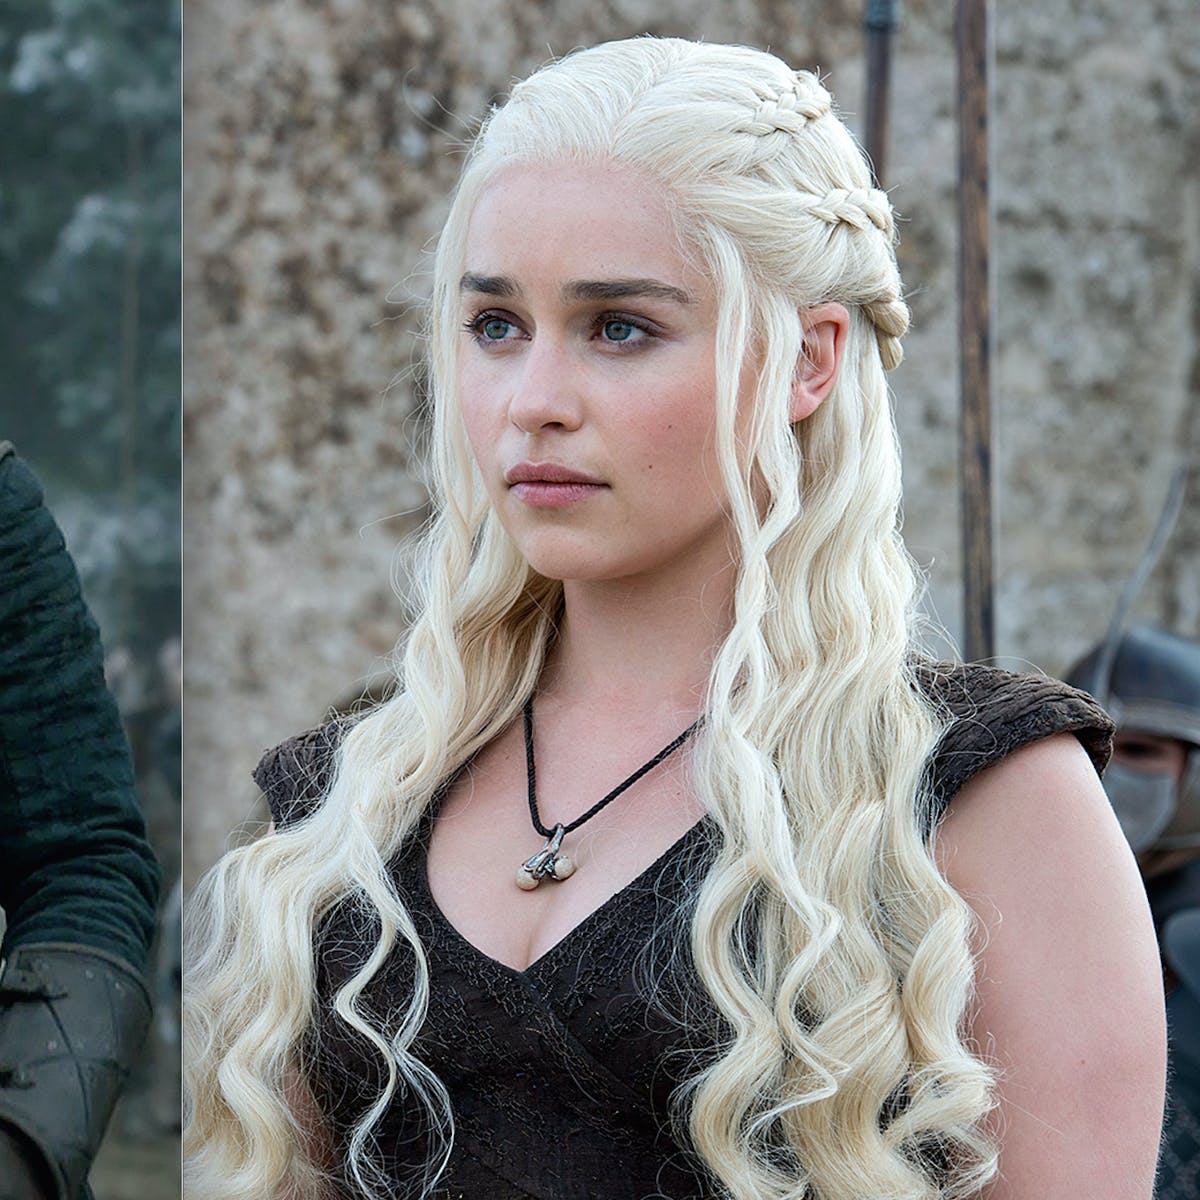 Jon and Daenerys Could Be the Night King and Queen on 'Game